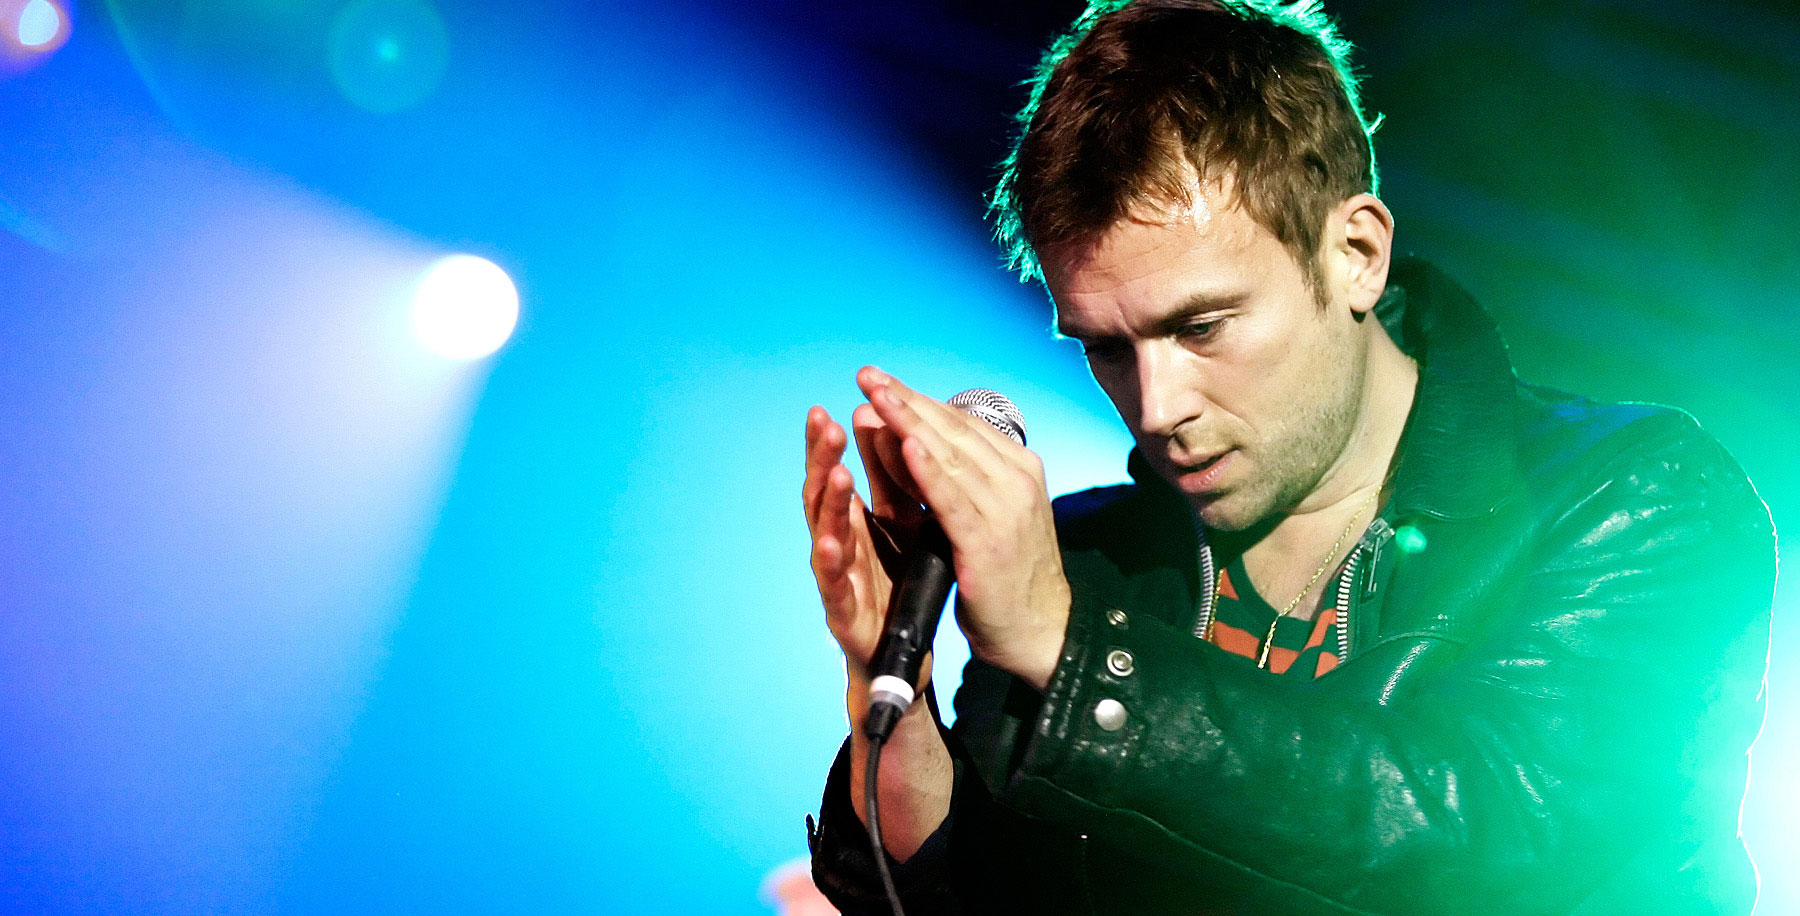 """Singer Damon Albarn - also known as frontman of the band Blur - of the British band Gorillaz performs live during a concert at the Velodrom in Berlin, Germany on November 21, 2010. The concert is part of the """"Escape to Plastic Beach World Tour 2010"""" and promotes the current album """"Plastic Beach"""".  Photo: Monique Wuestenhagen"""